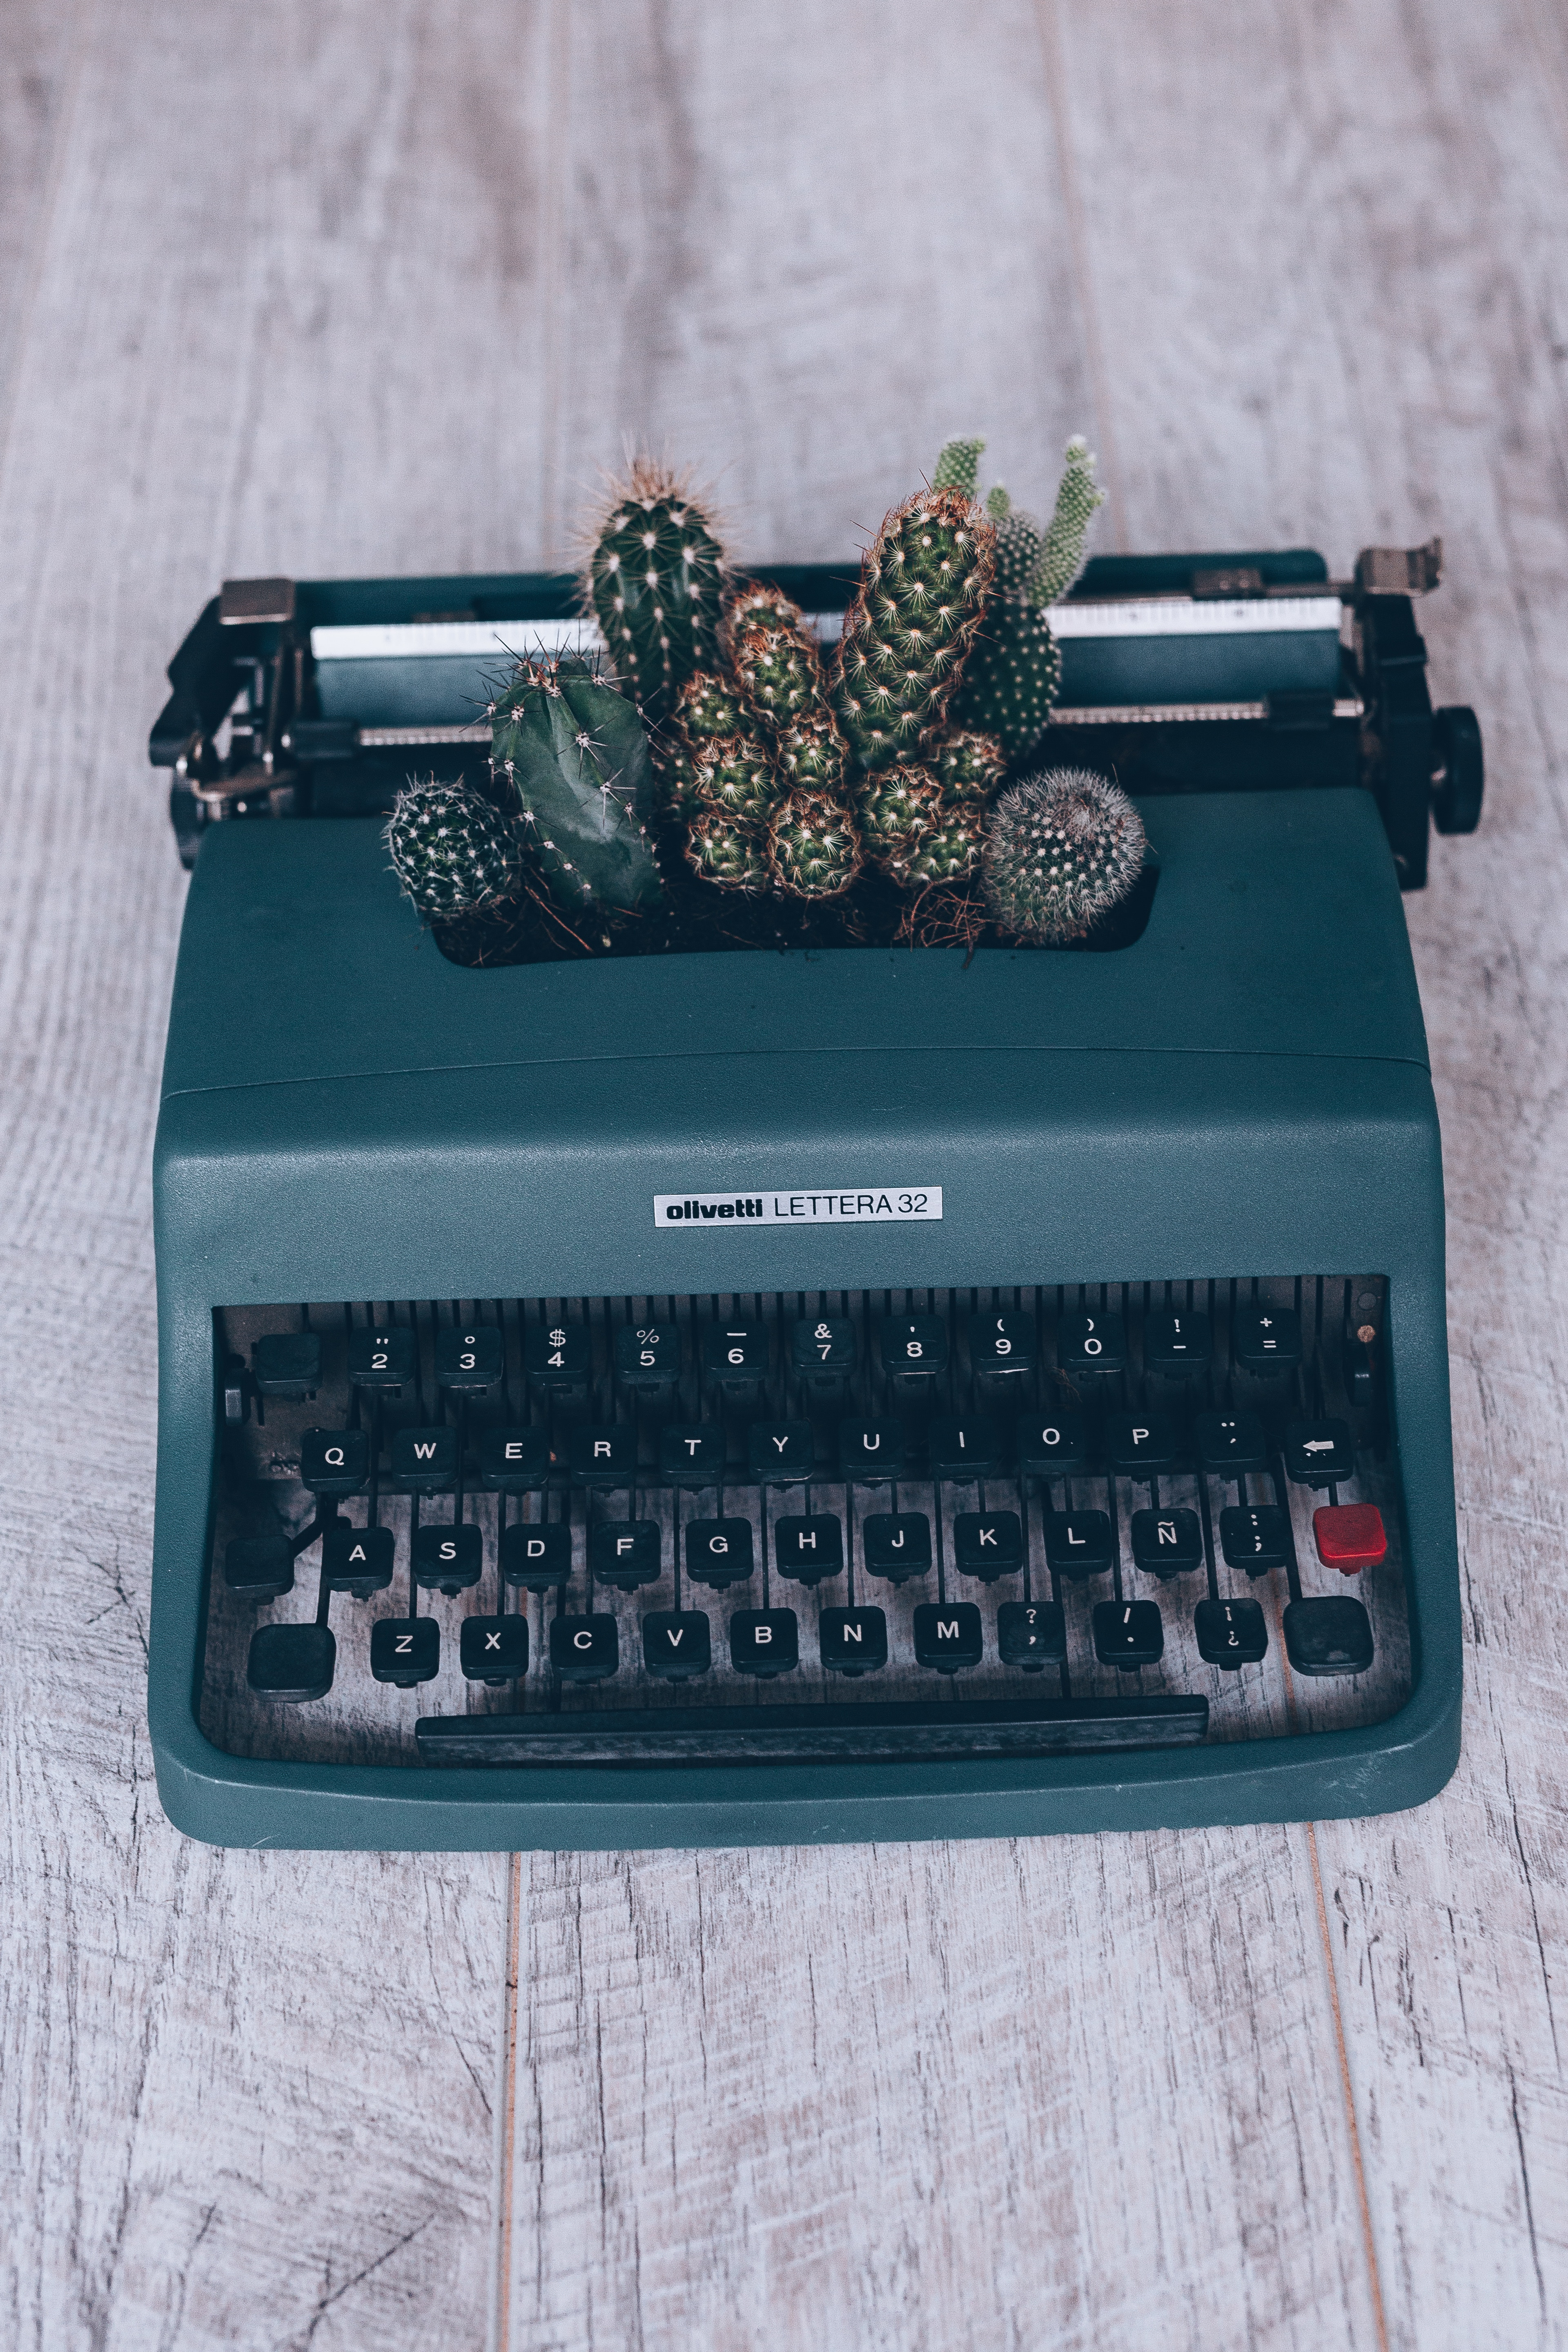 dark teal ollvetti Lettera 32 typewriter with cactus plants in the key stroke space